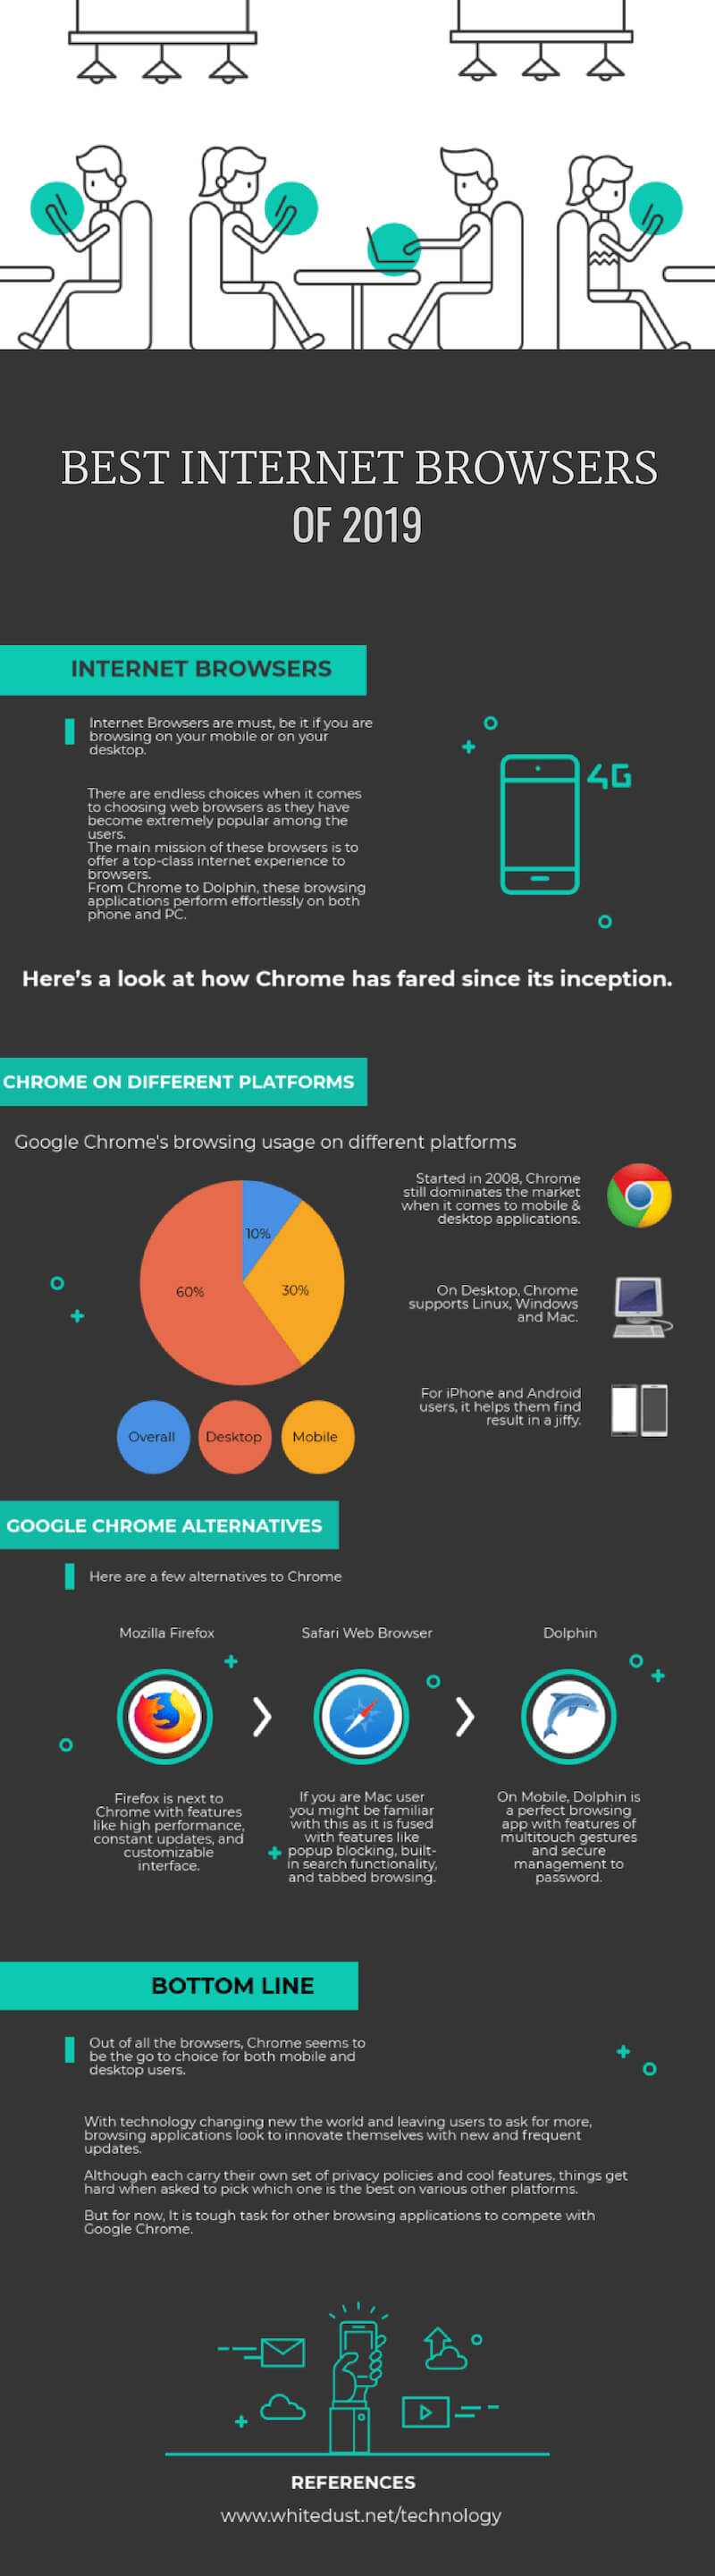 TOP INTERNET BROWSER OF 2019 INFOGRAPHICS